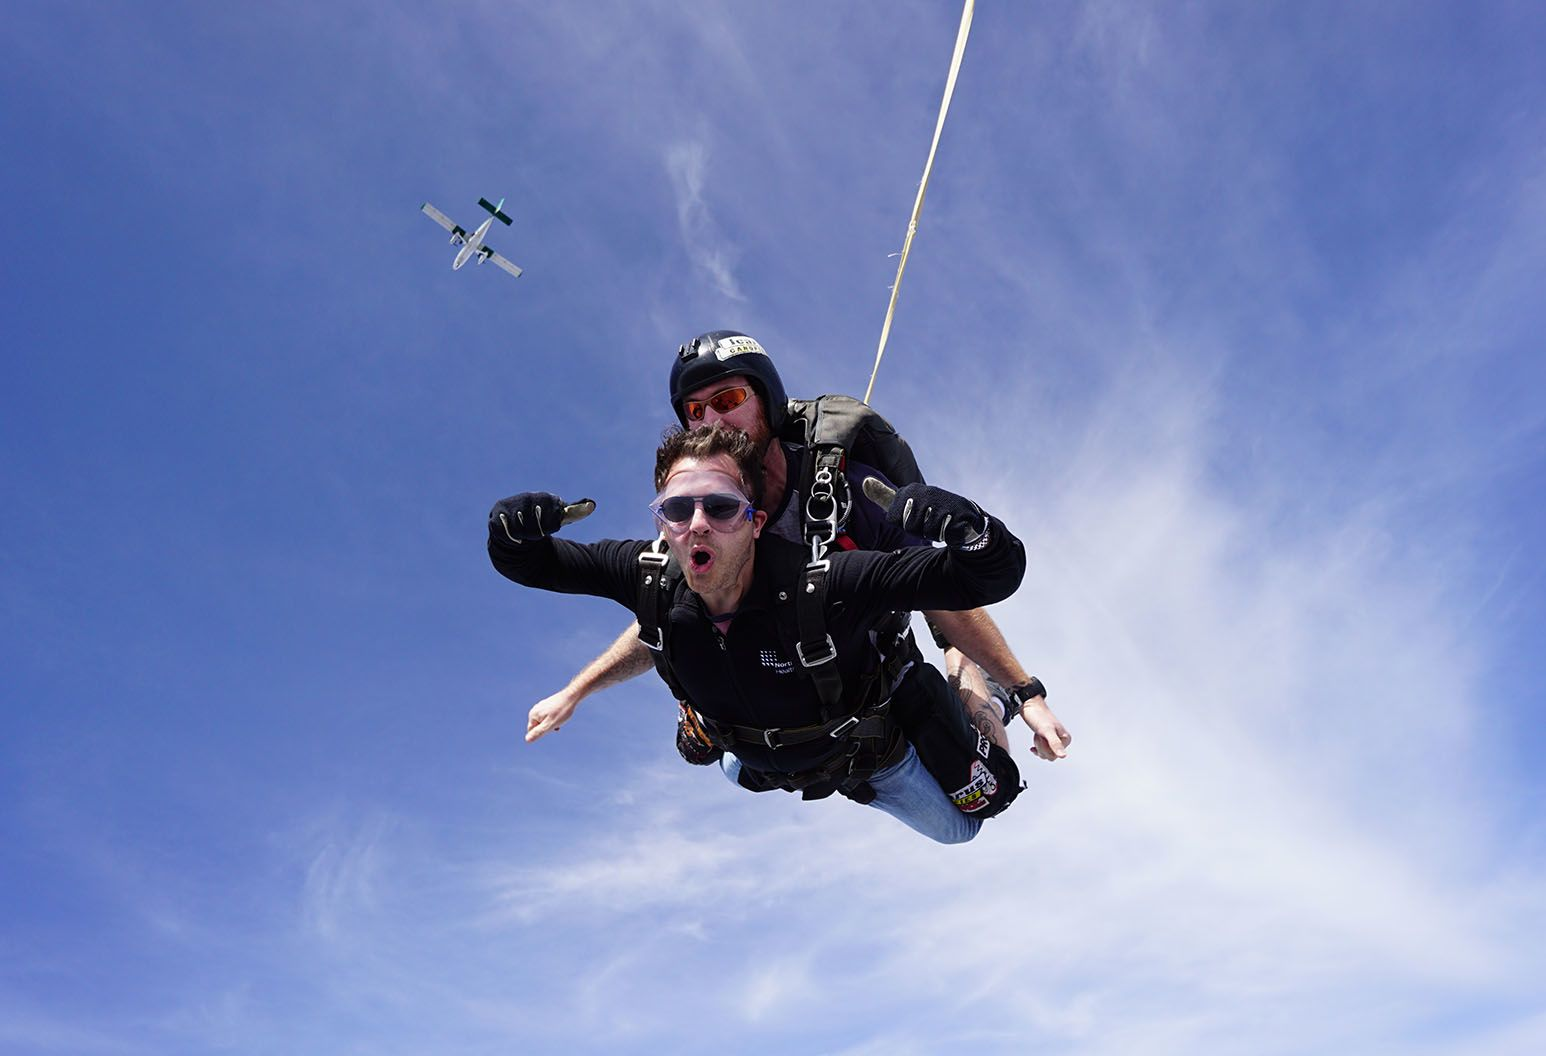 Man sky diving, giving camera two thumbs up